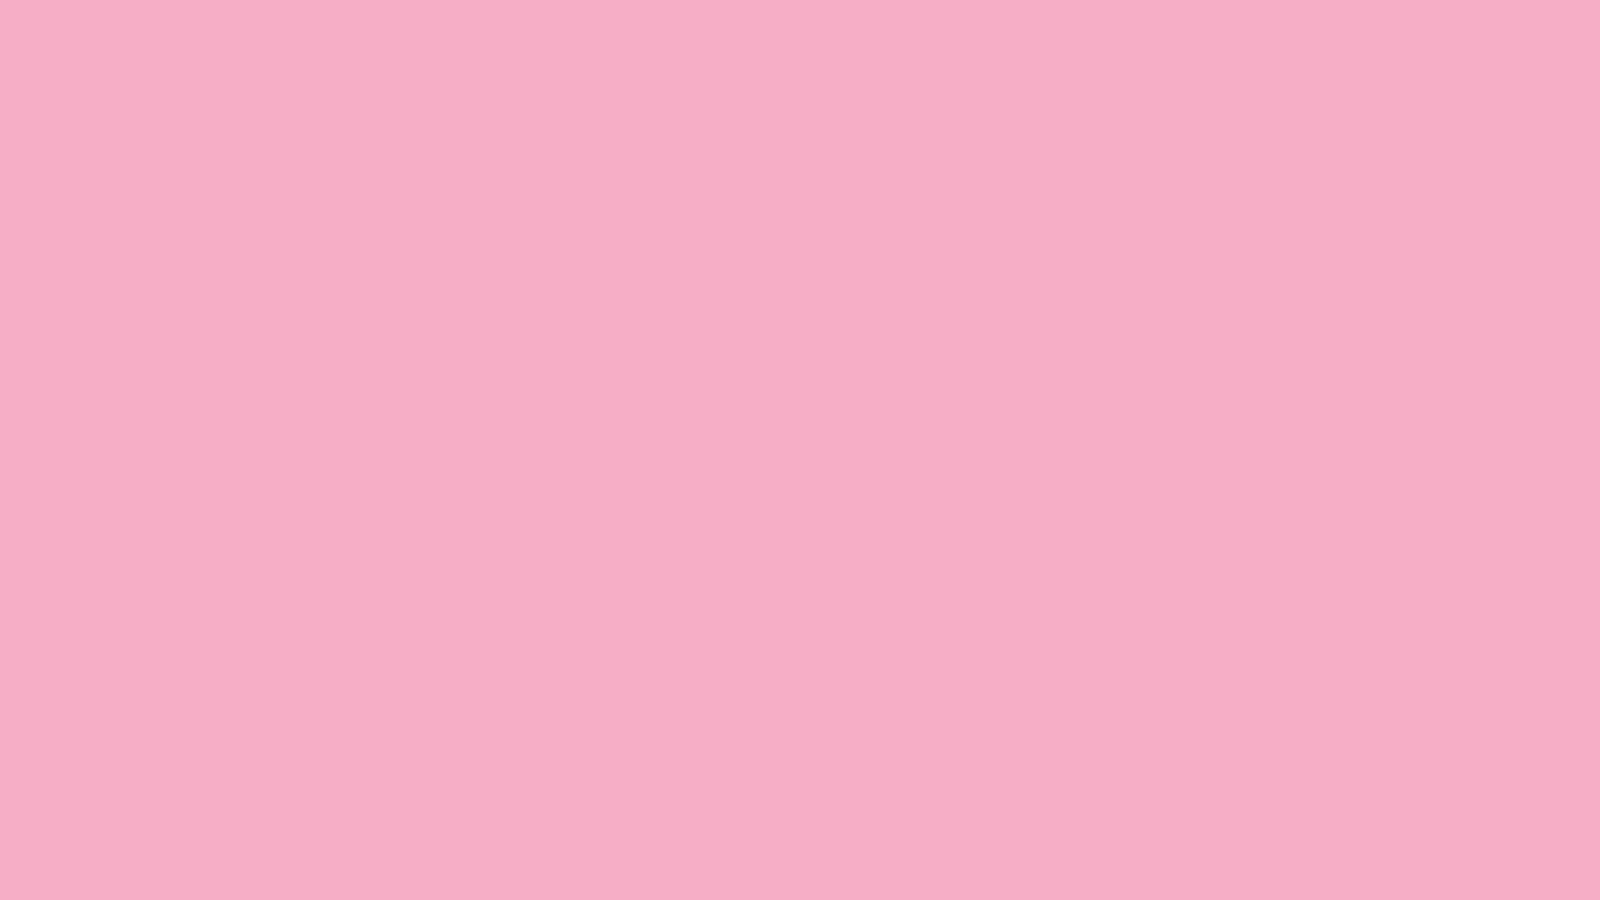 1600x900 Nadeshiko Pink Solid Color Background